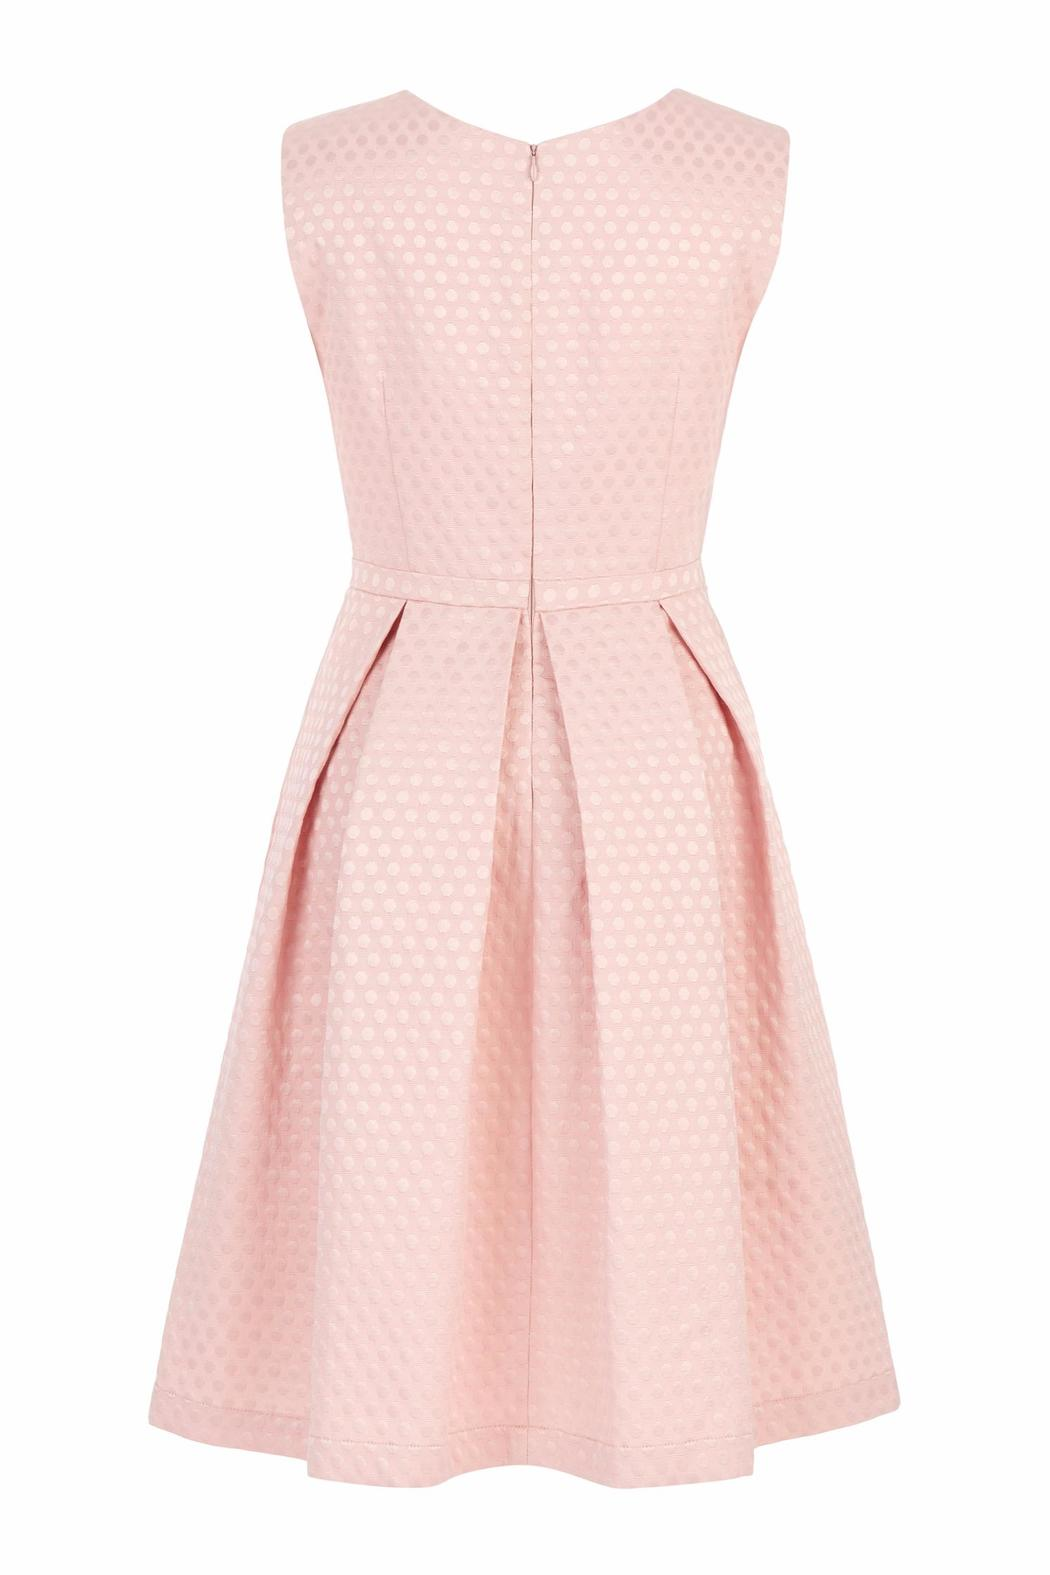 Pink Poodle Boutique Moulin Pink Dress From Glasgow By